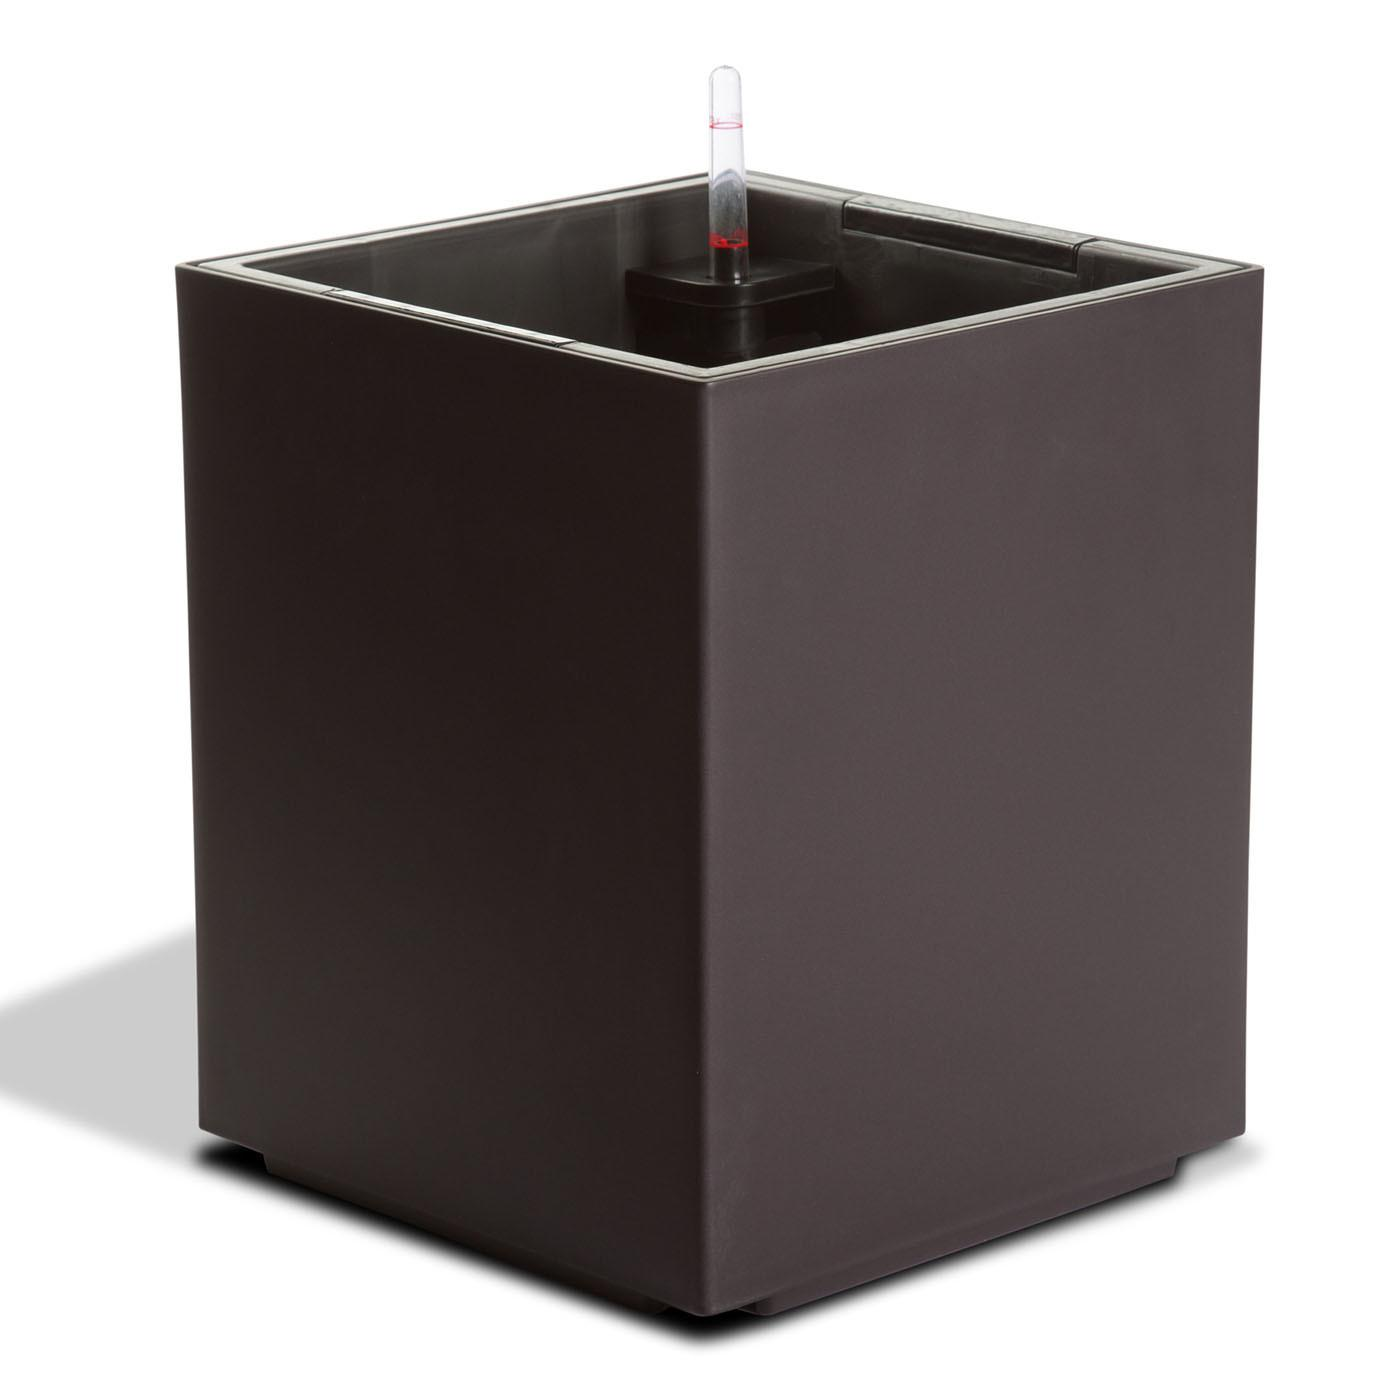 Algreen Products Self Watering Modena Cube Planter Lowe